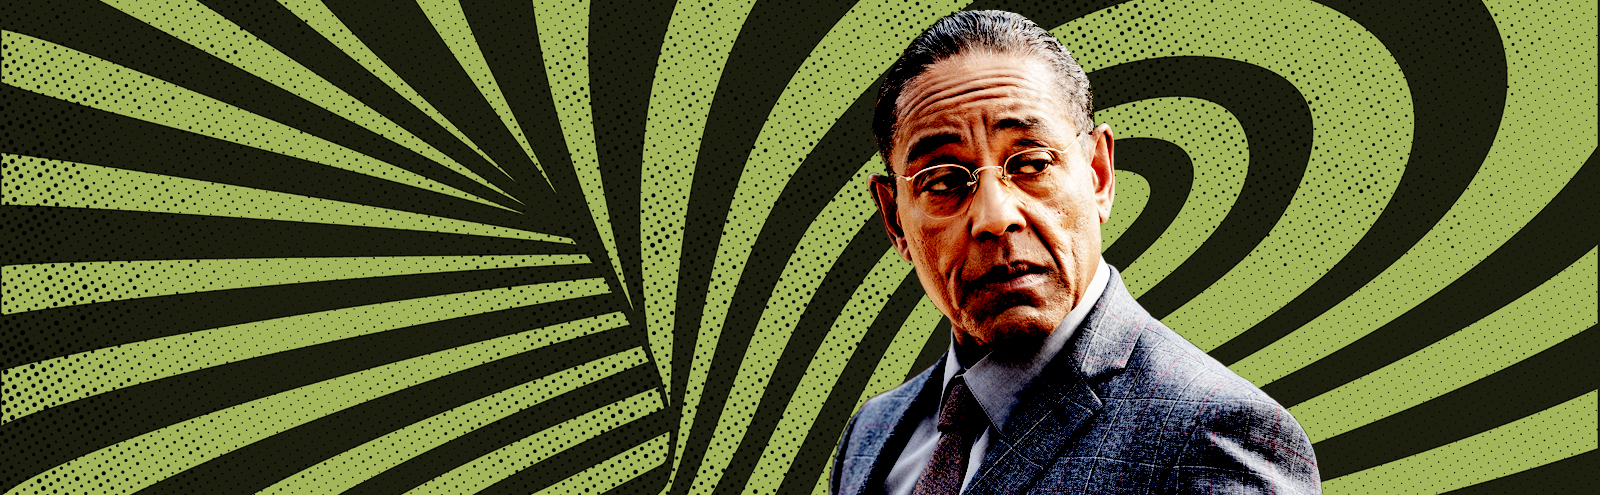 The Rundown: Is Gus Fring Lying About His Chicken?